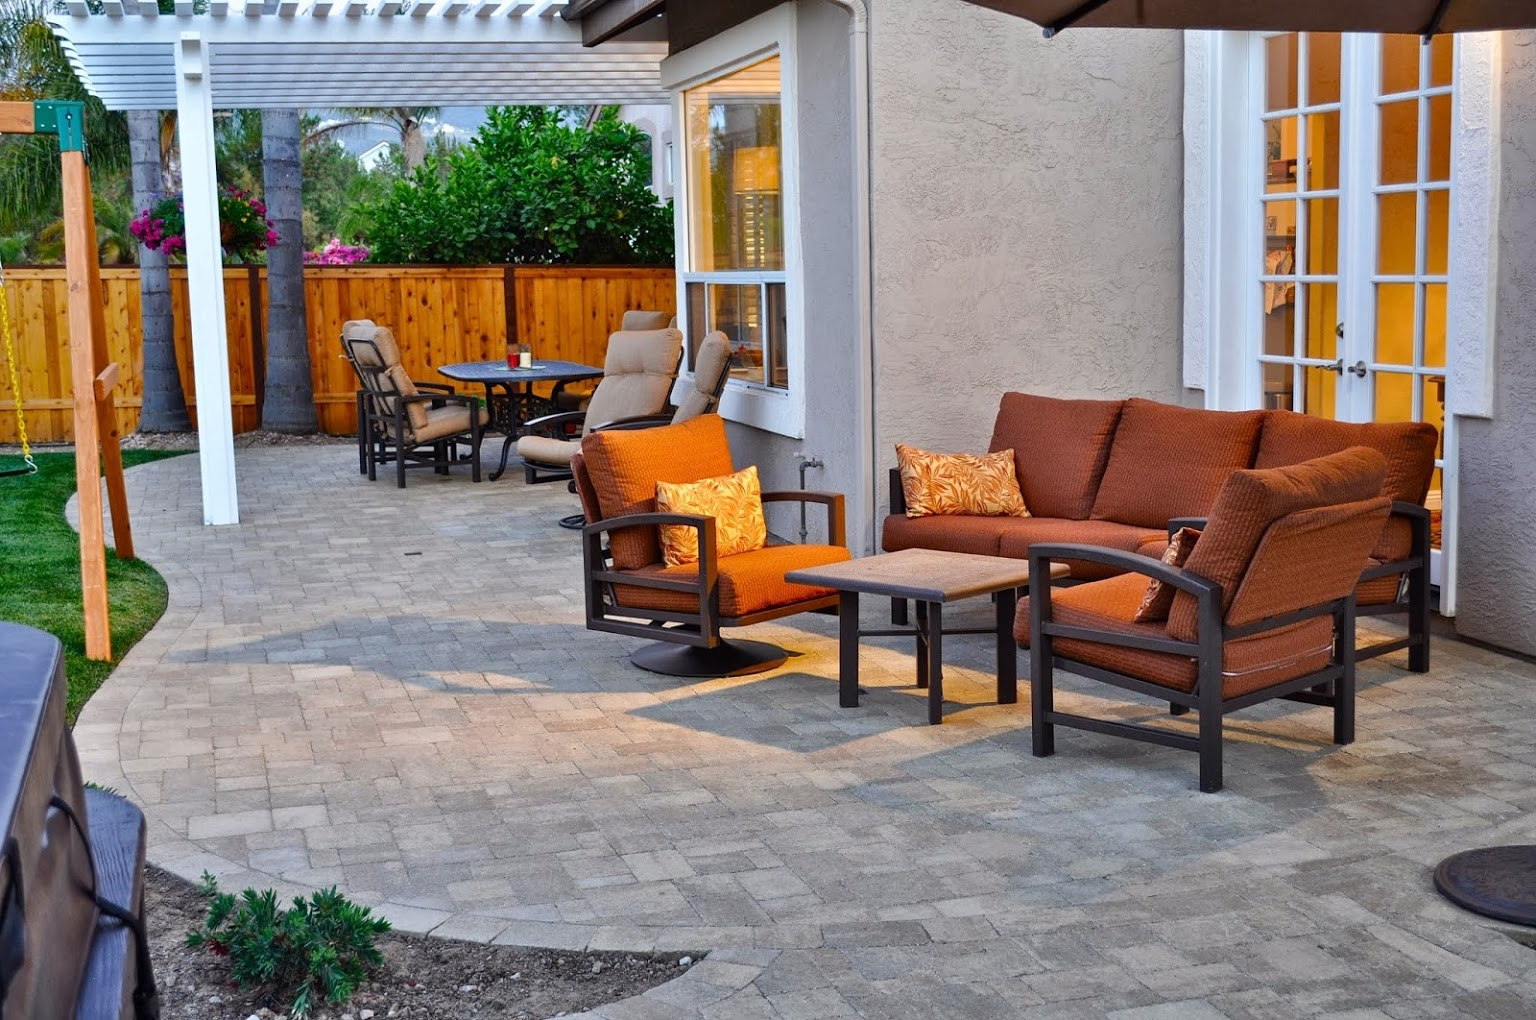 About - After 23 years of experience, and having completed thousands of beautiful projects all throughout Southern California, Apollo Pavers was created.